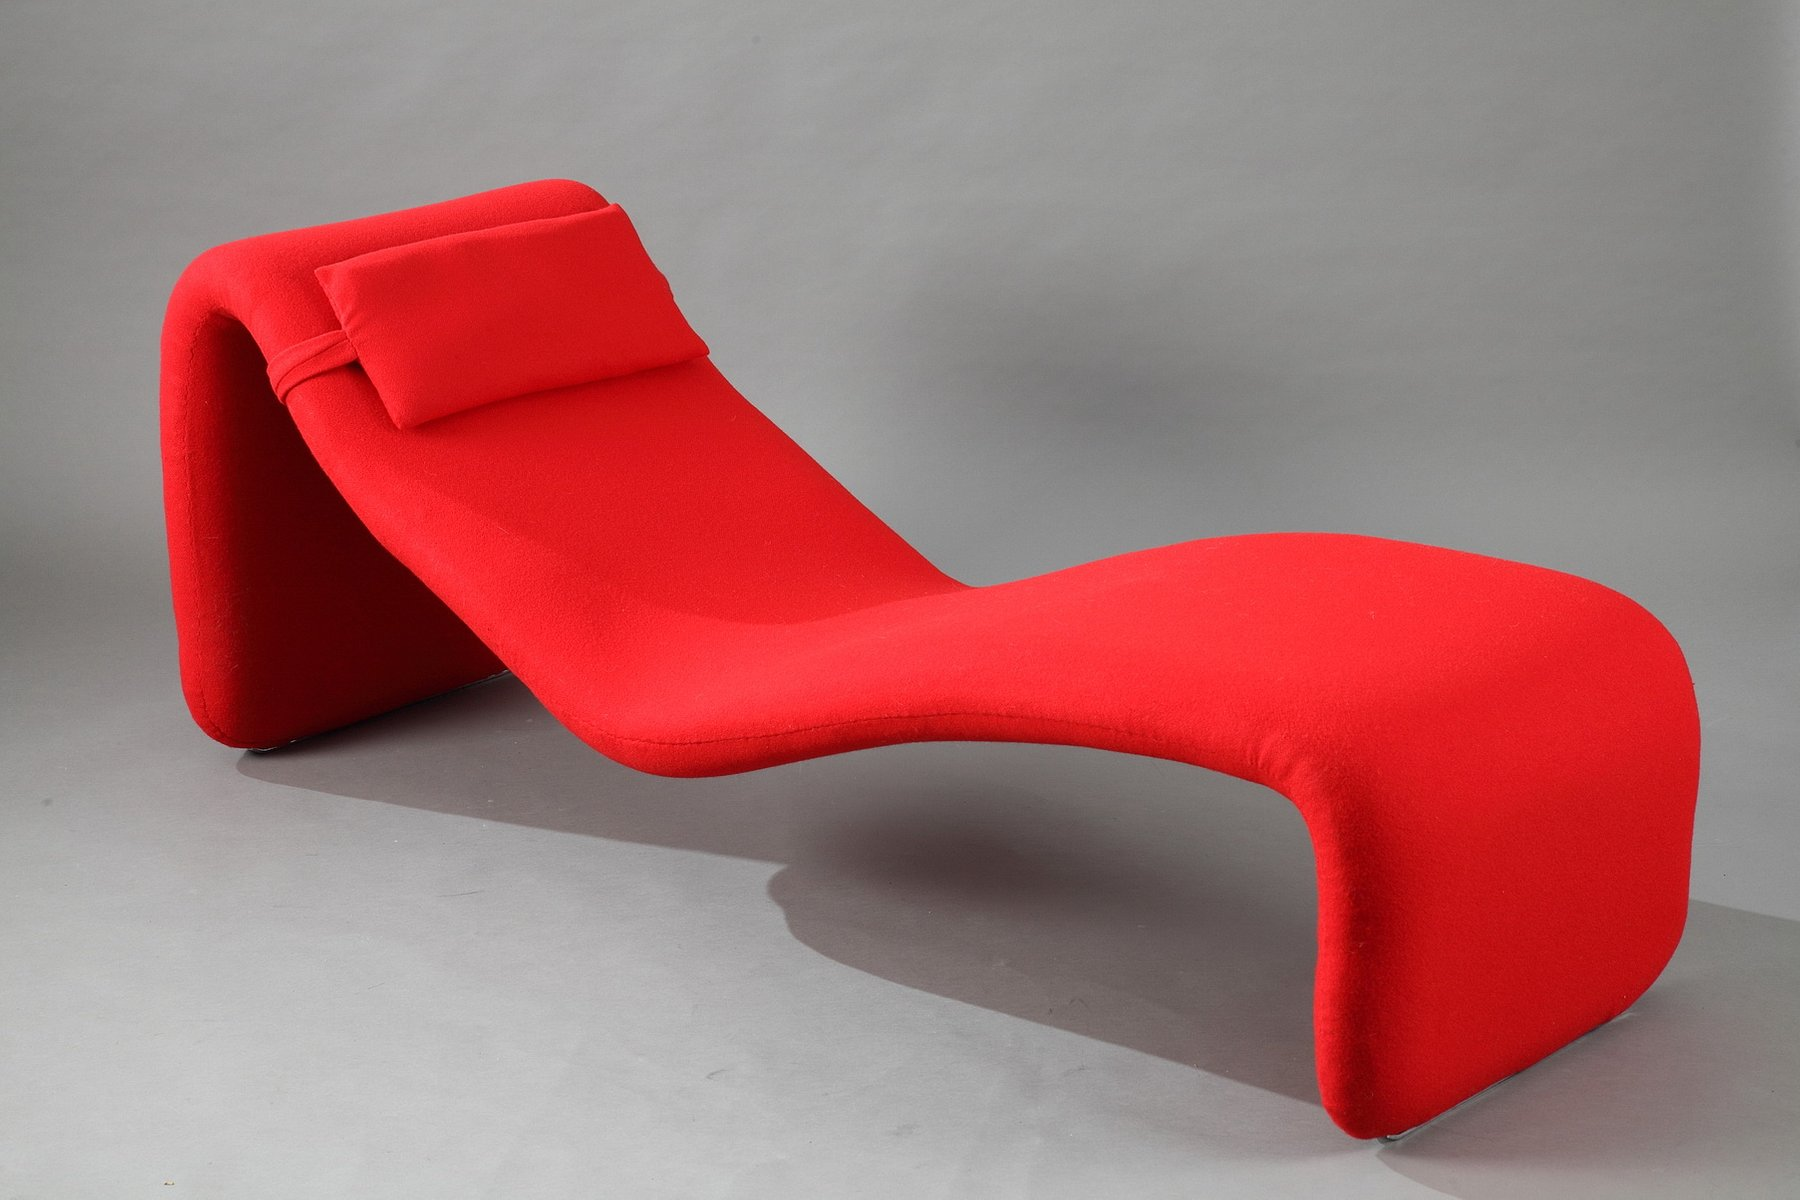 Awesome Chaise Longue Prezzi Bassi Images - head-lice.us - head-lice.us